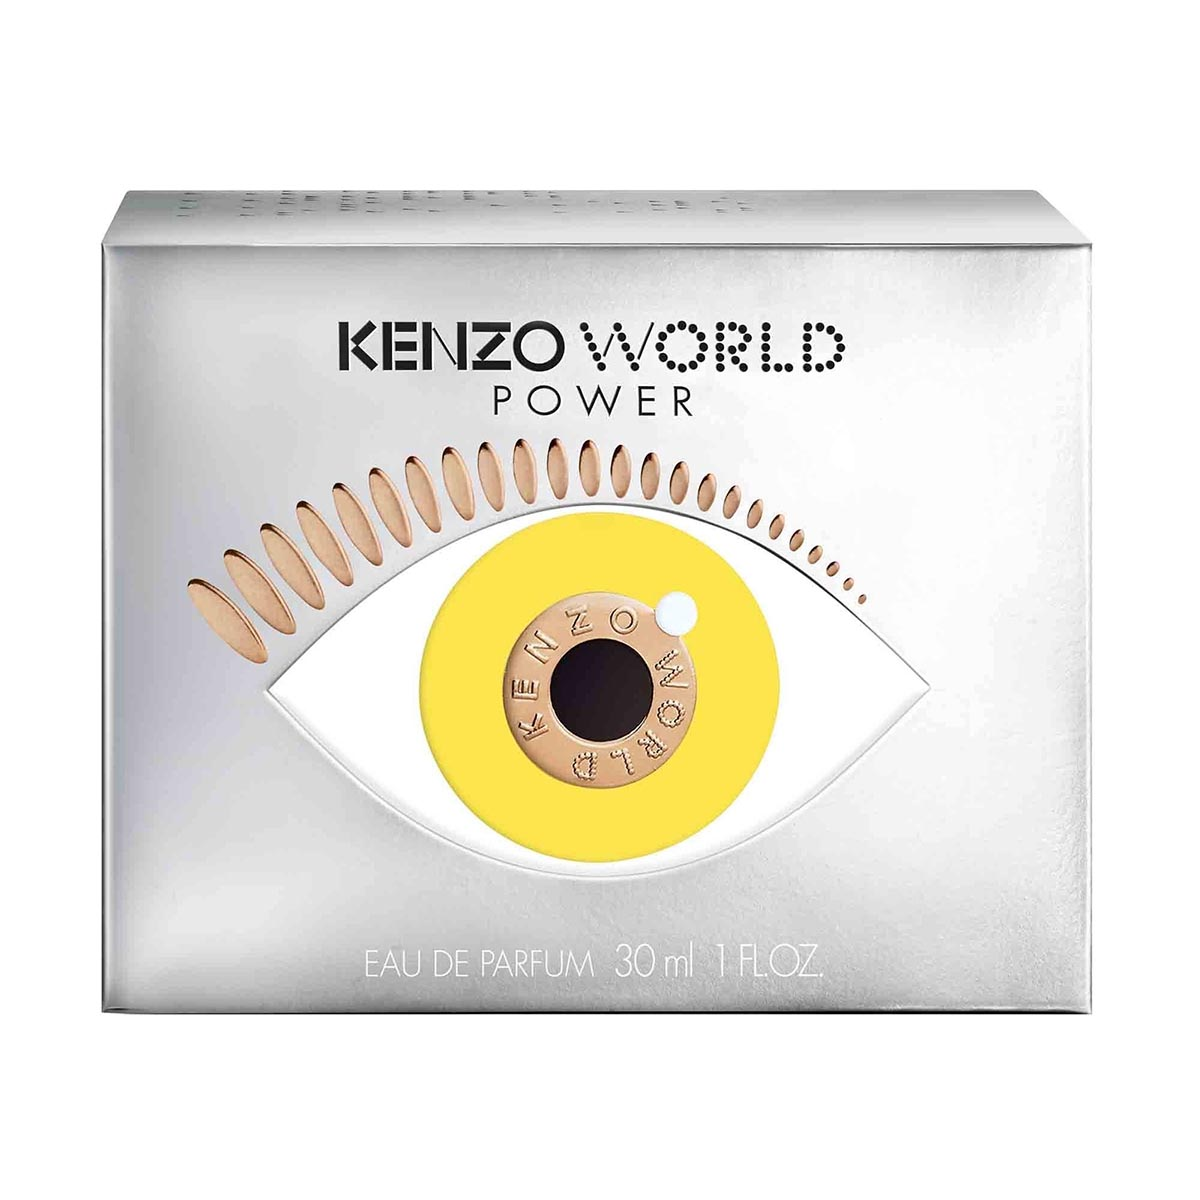 Kenzo world power eau de parfum 30ml vaporizador